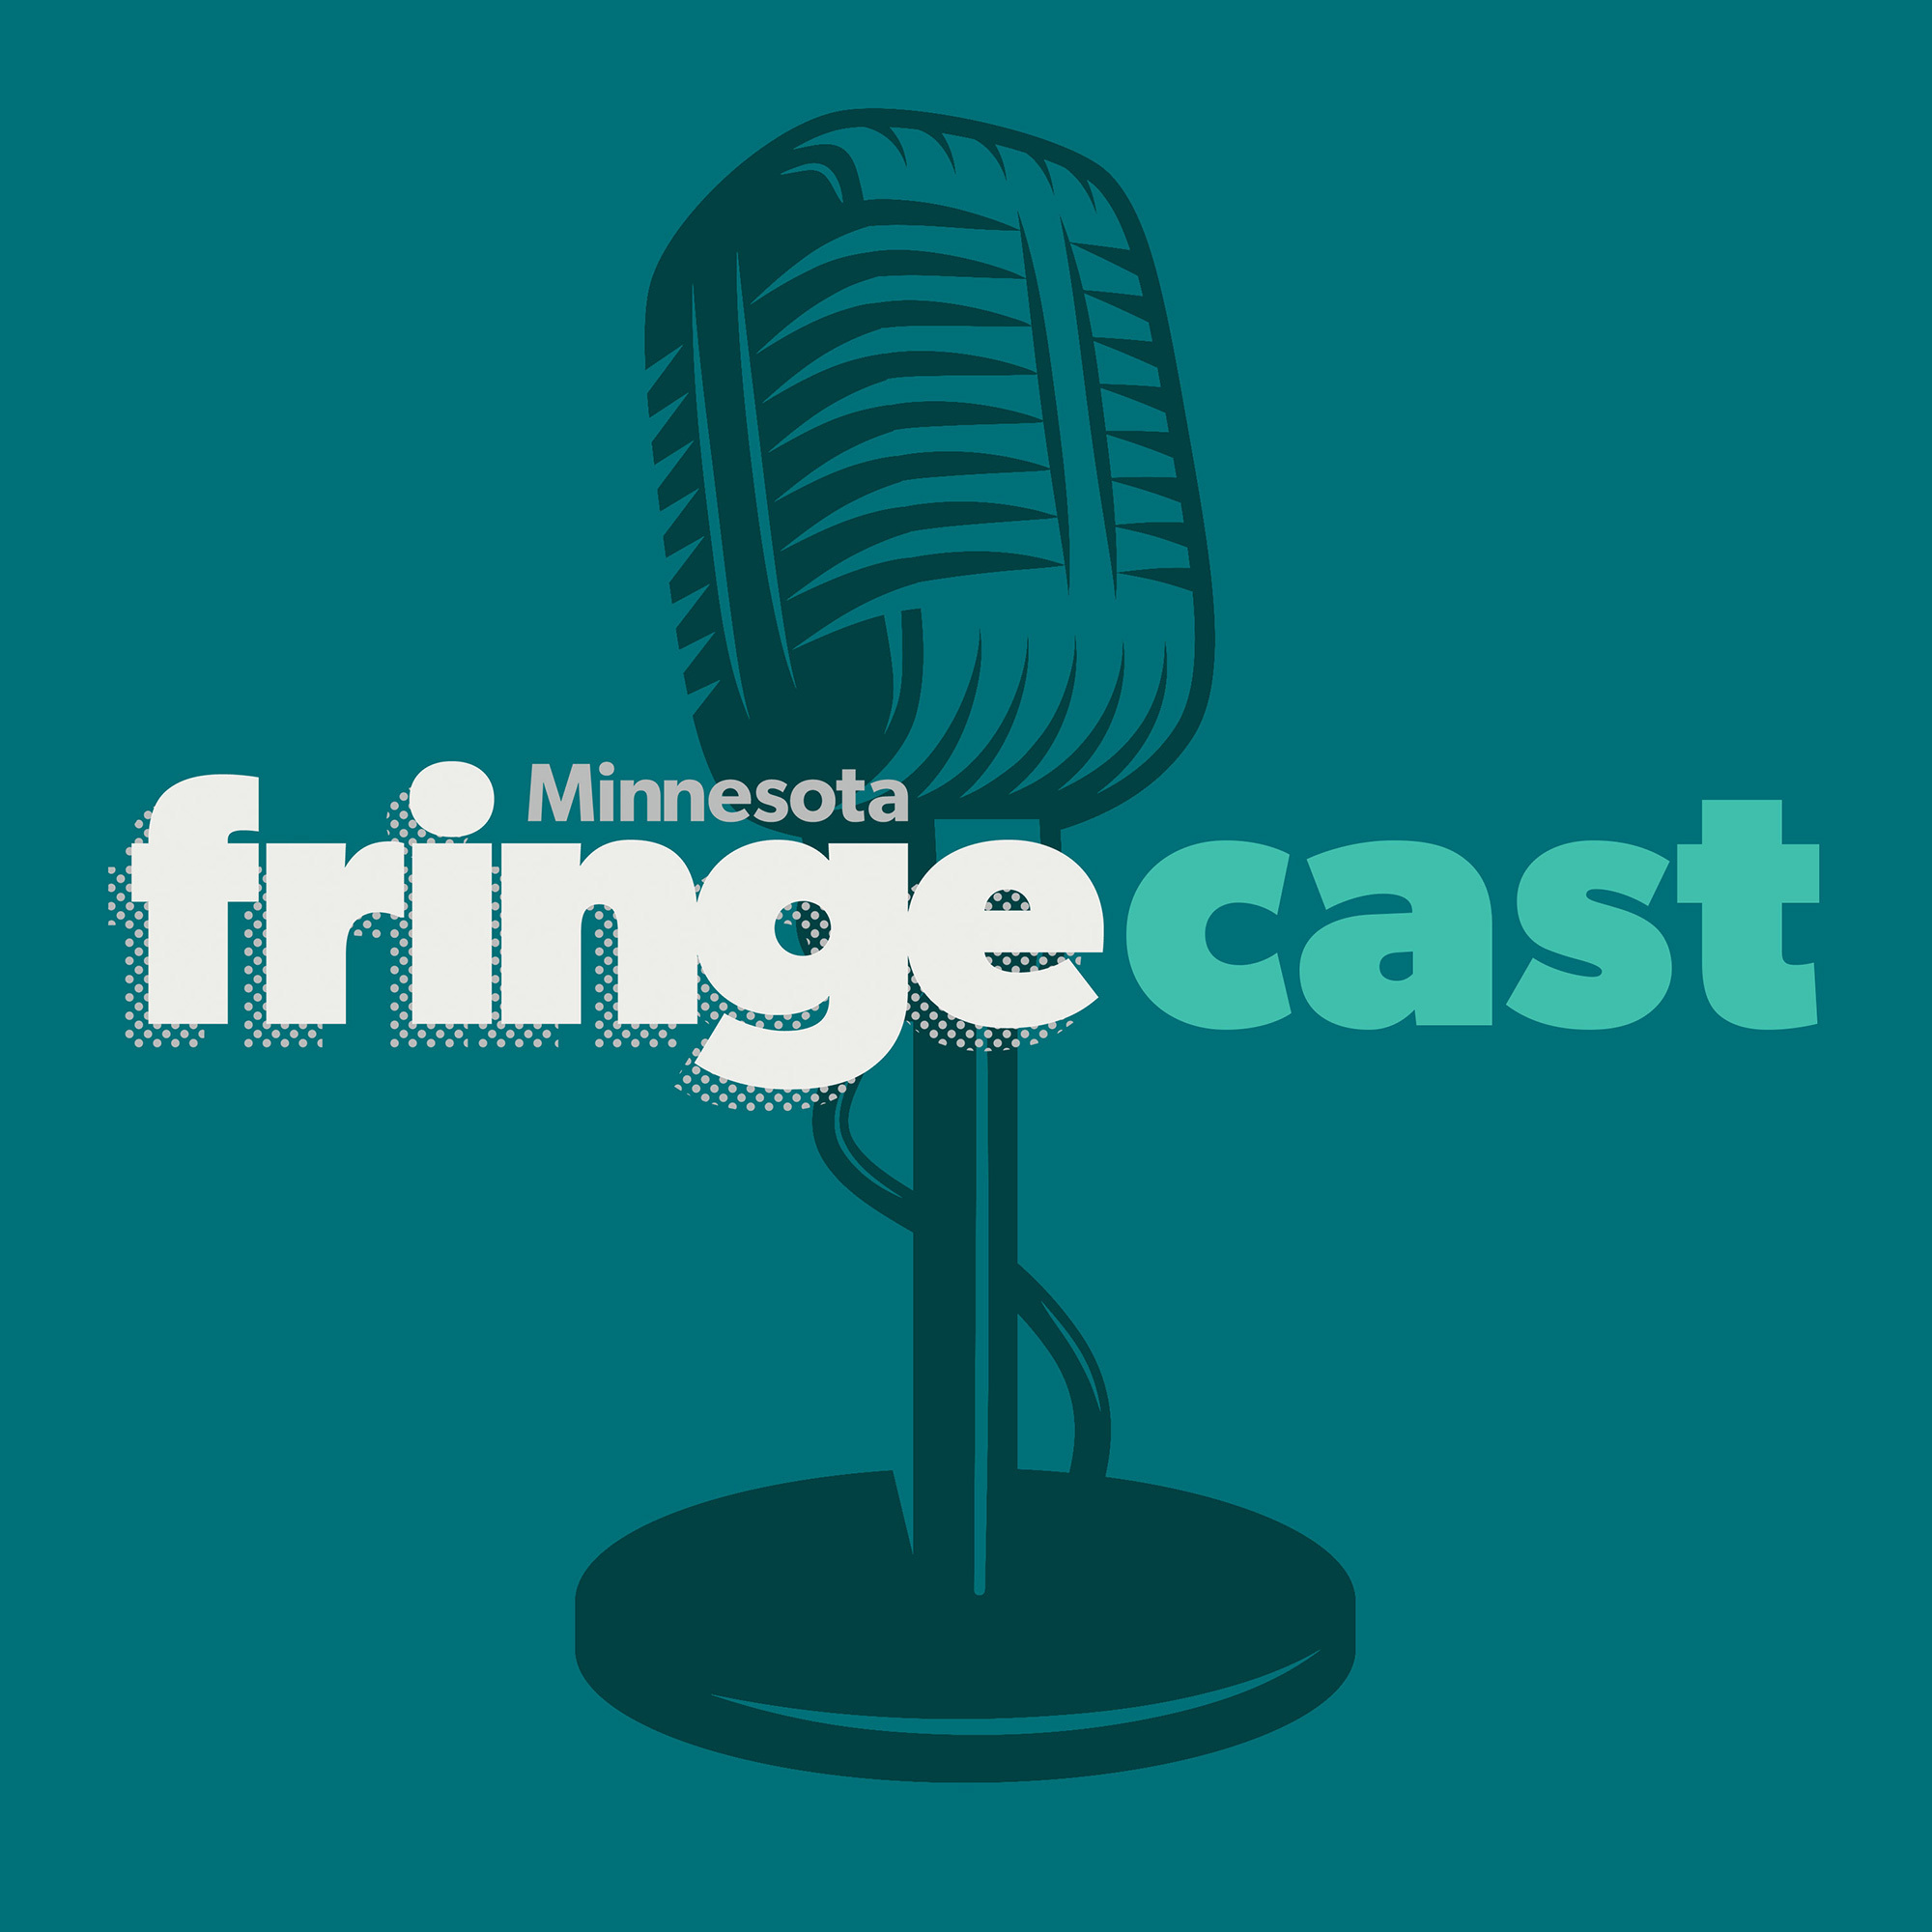 Minnesota FringeCast Episode 9 Podcast Cover Image